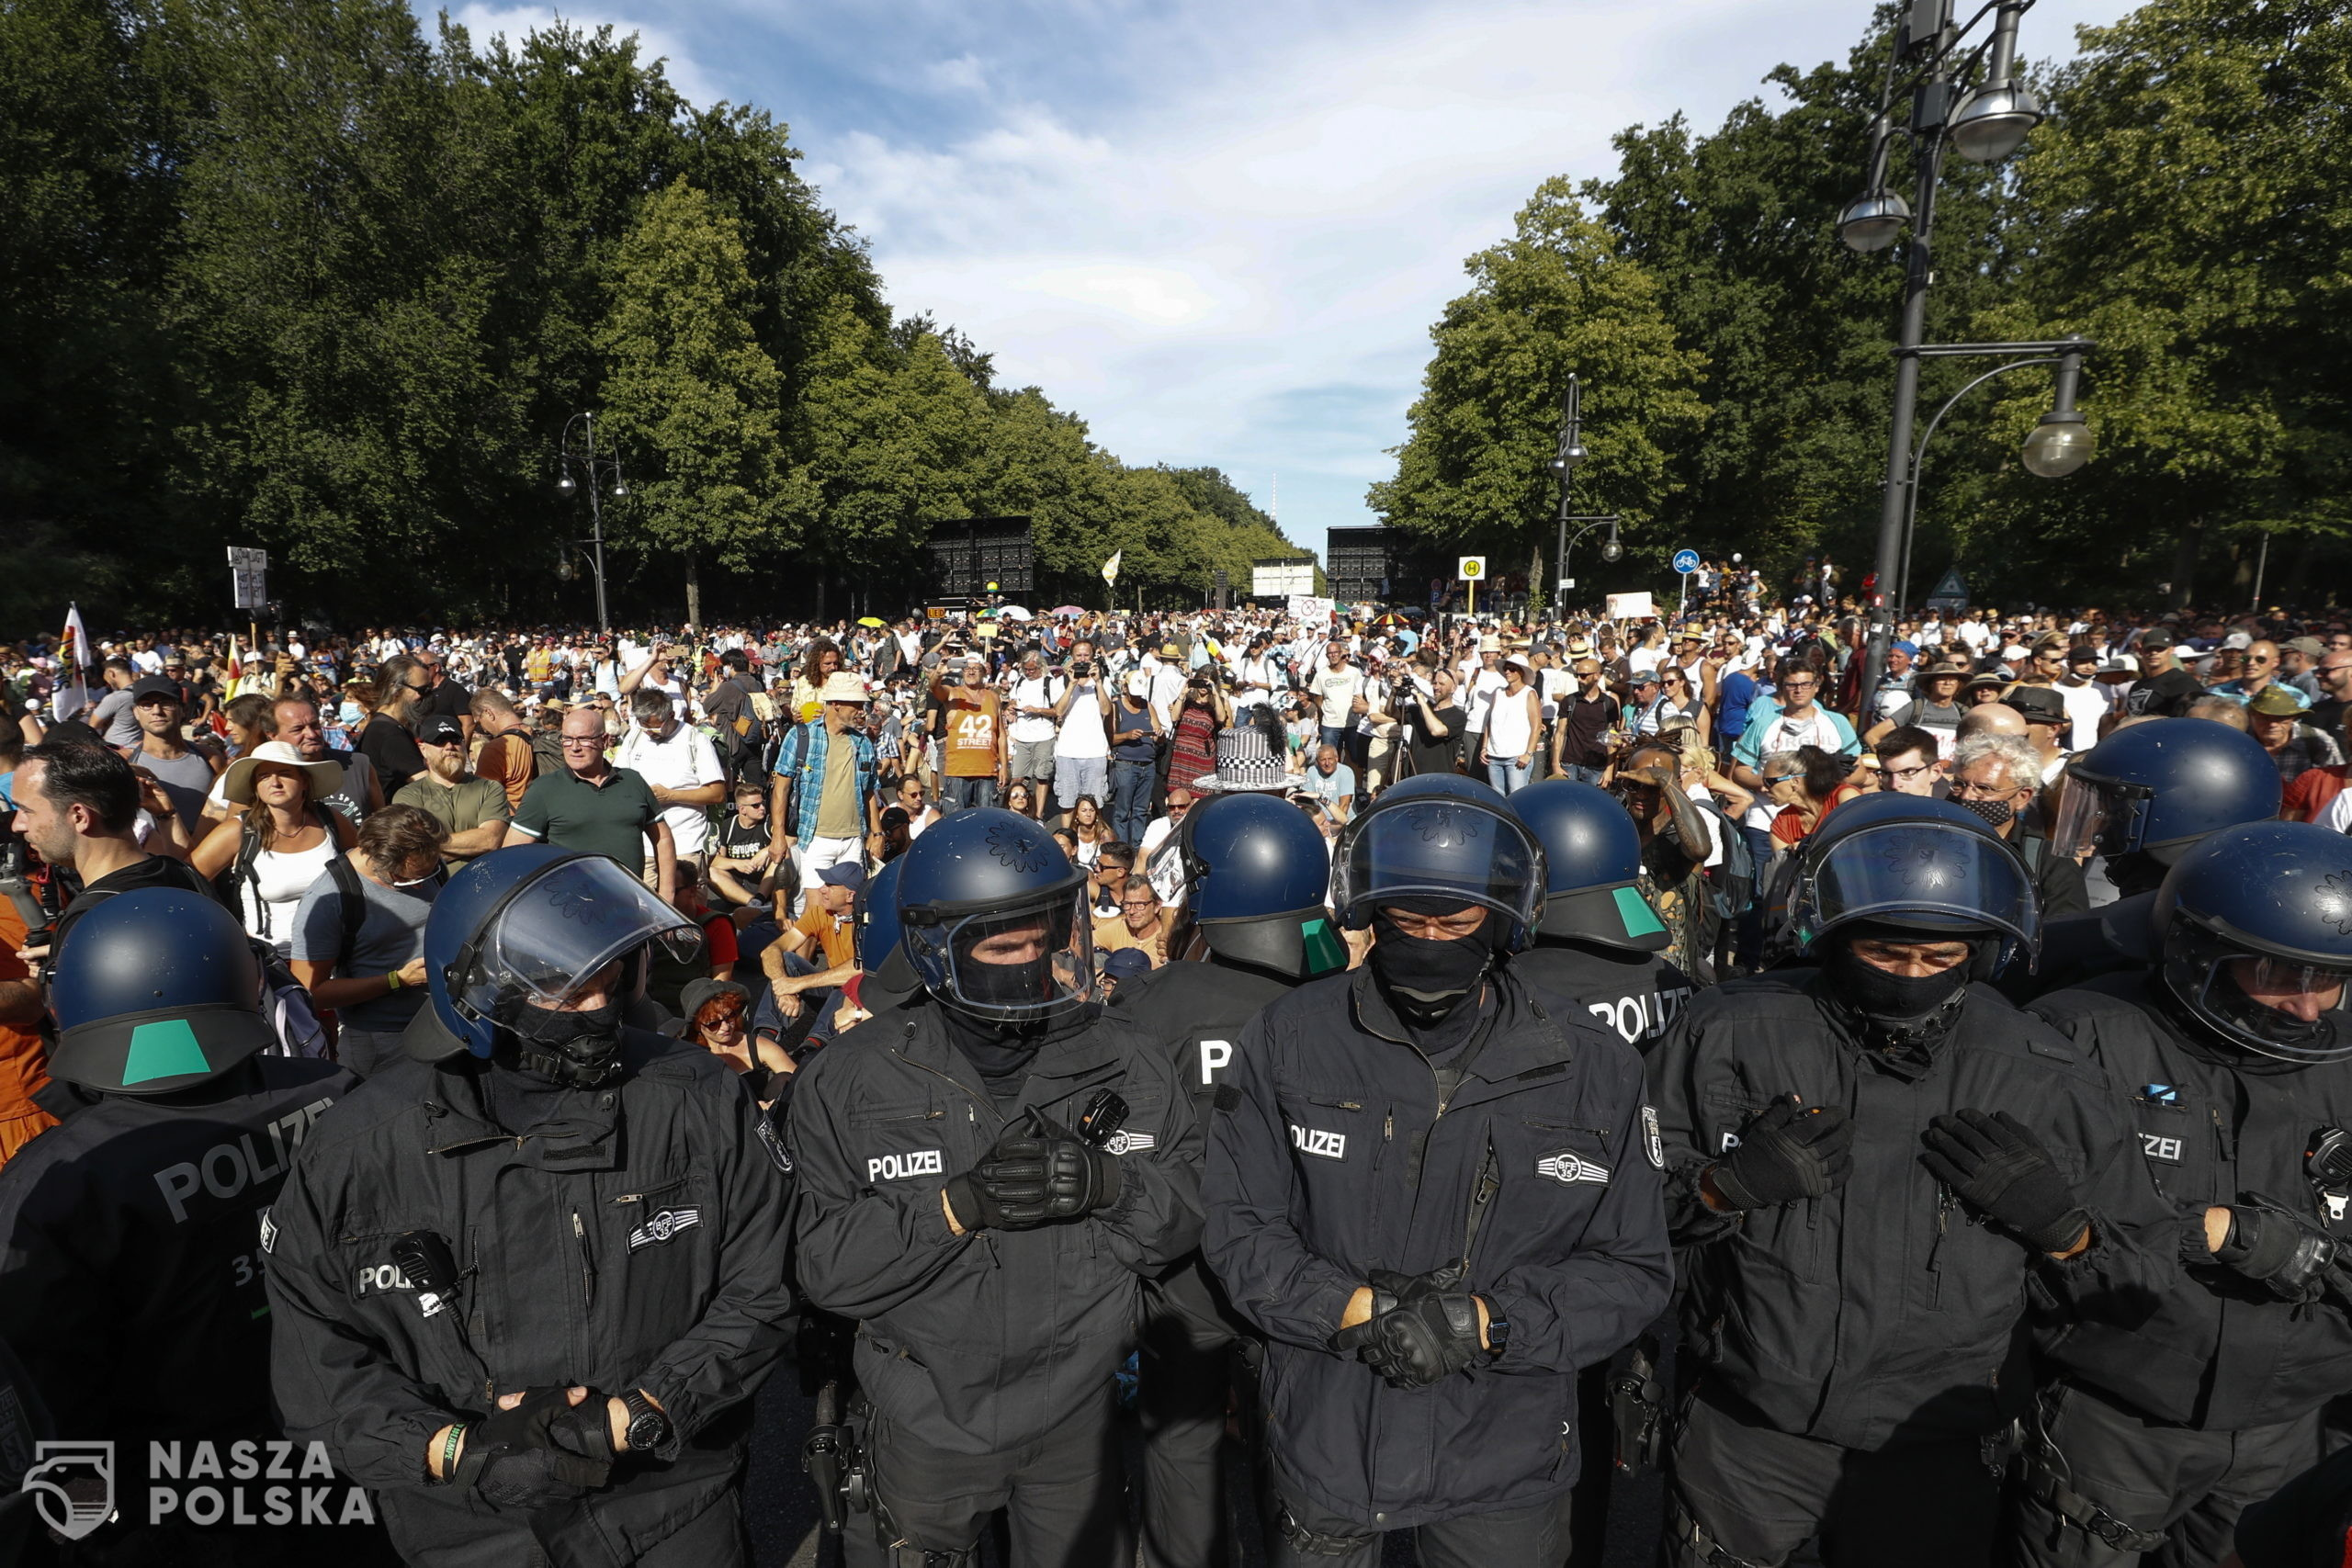 epa08579075 Police form a row in front of demonstrators during a protest against coronavirus pandemic regulations in Berlin, Germany, 01 August 2020. An alliance of right wing groups have called to a democratic resistance demonstration for the first weekend in August. The nationwide rally 'Day of Freedom' will take place 01 August as a protest against the measures imposed by the Government in relation to the coronavirus pandemic. The events are organized by groups of various motives, right wing activists, conspiracy theory believers and more.  EPA/FELIPE TRUEBA  Dostawca: PAP/EPA.